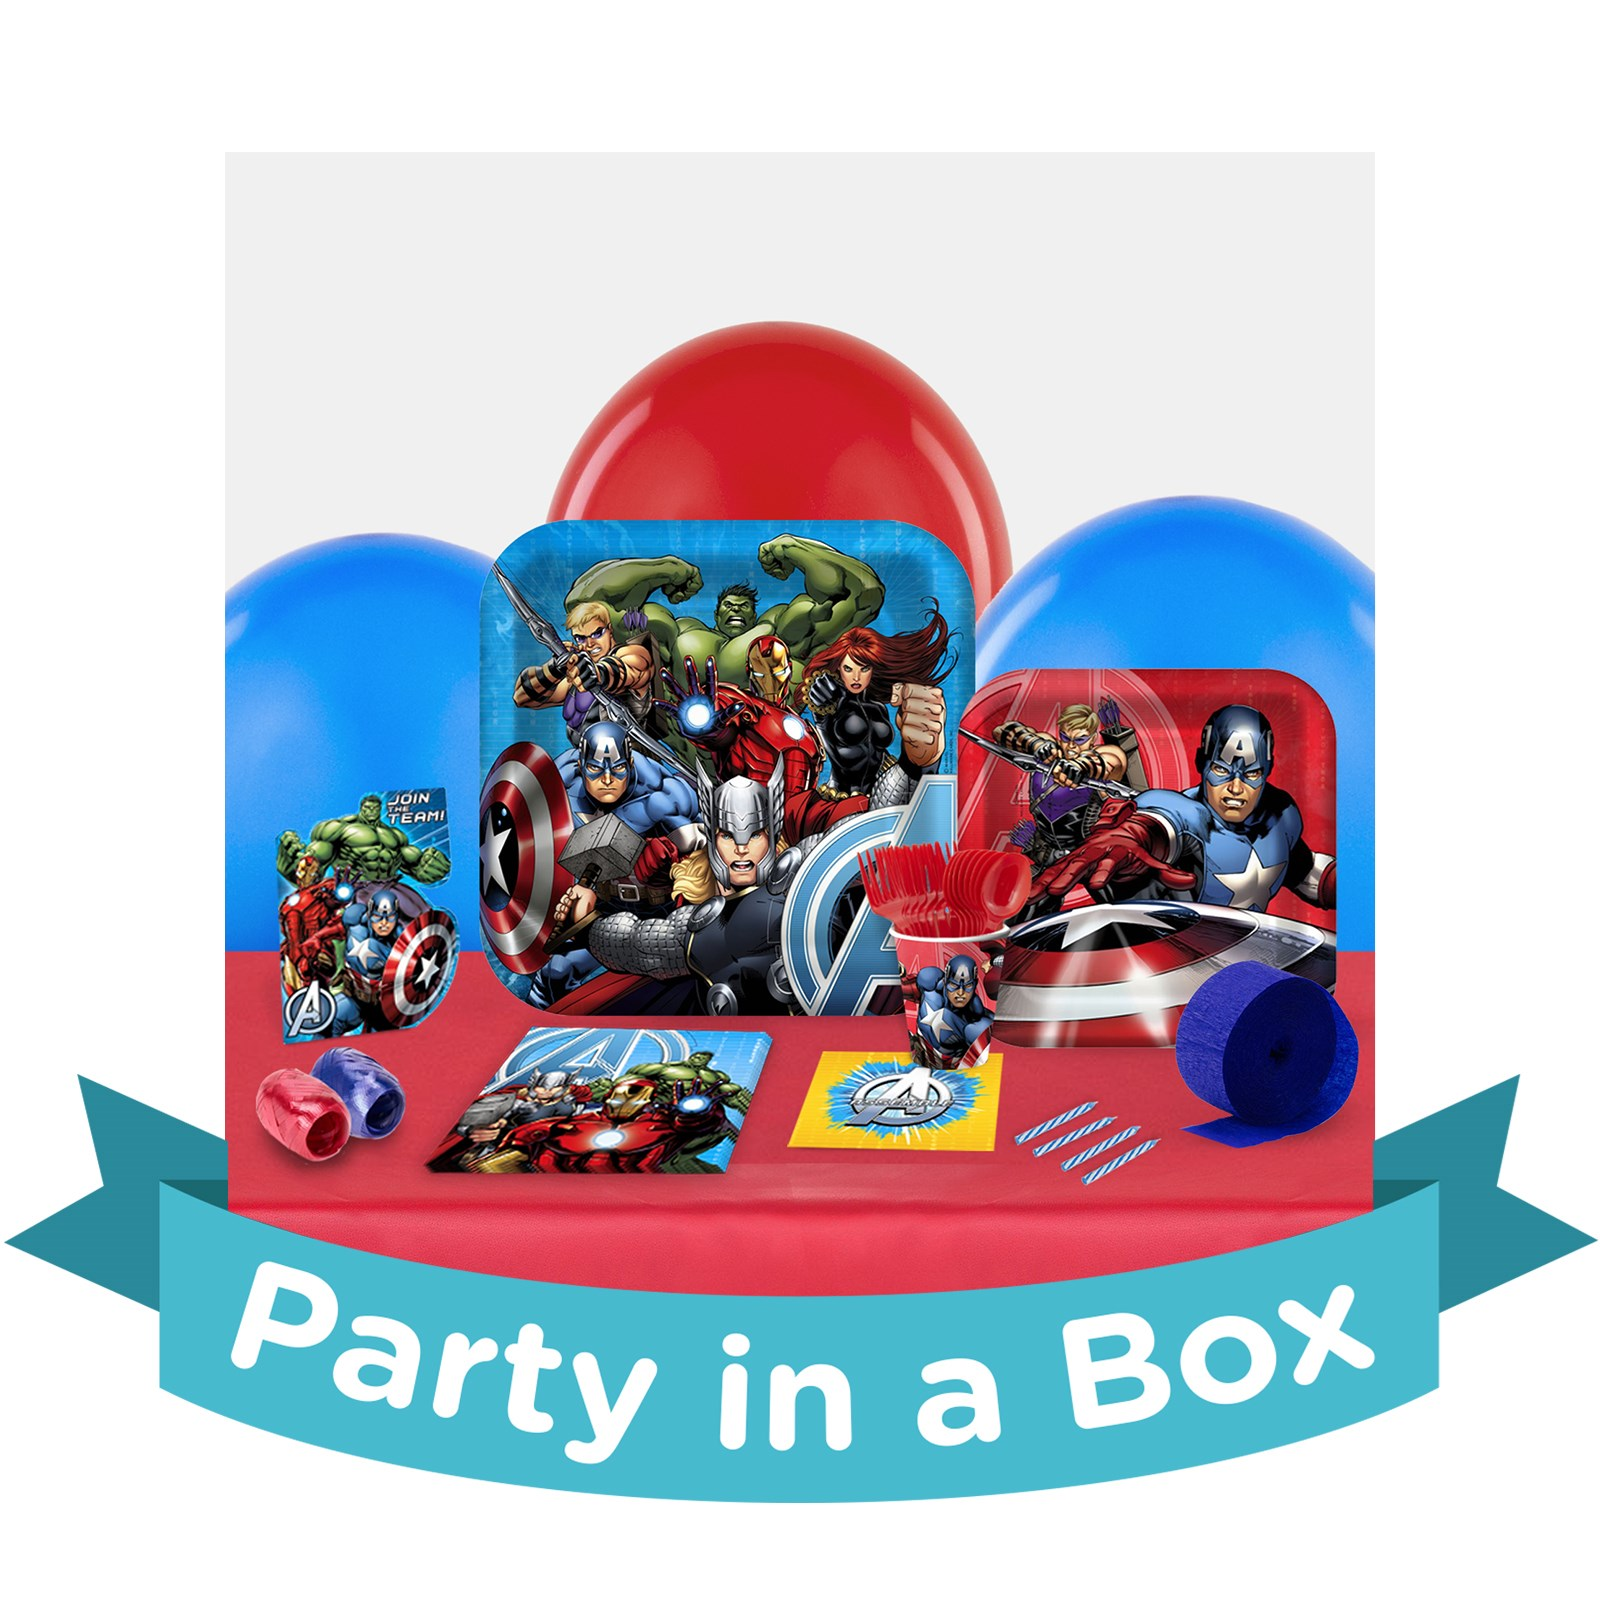 Avengers Assemble Party in a Box - Deluxe with Favors - 8 Guests